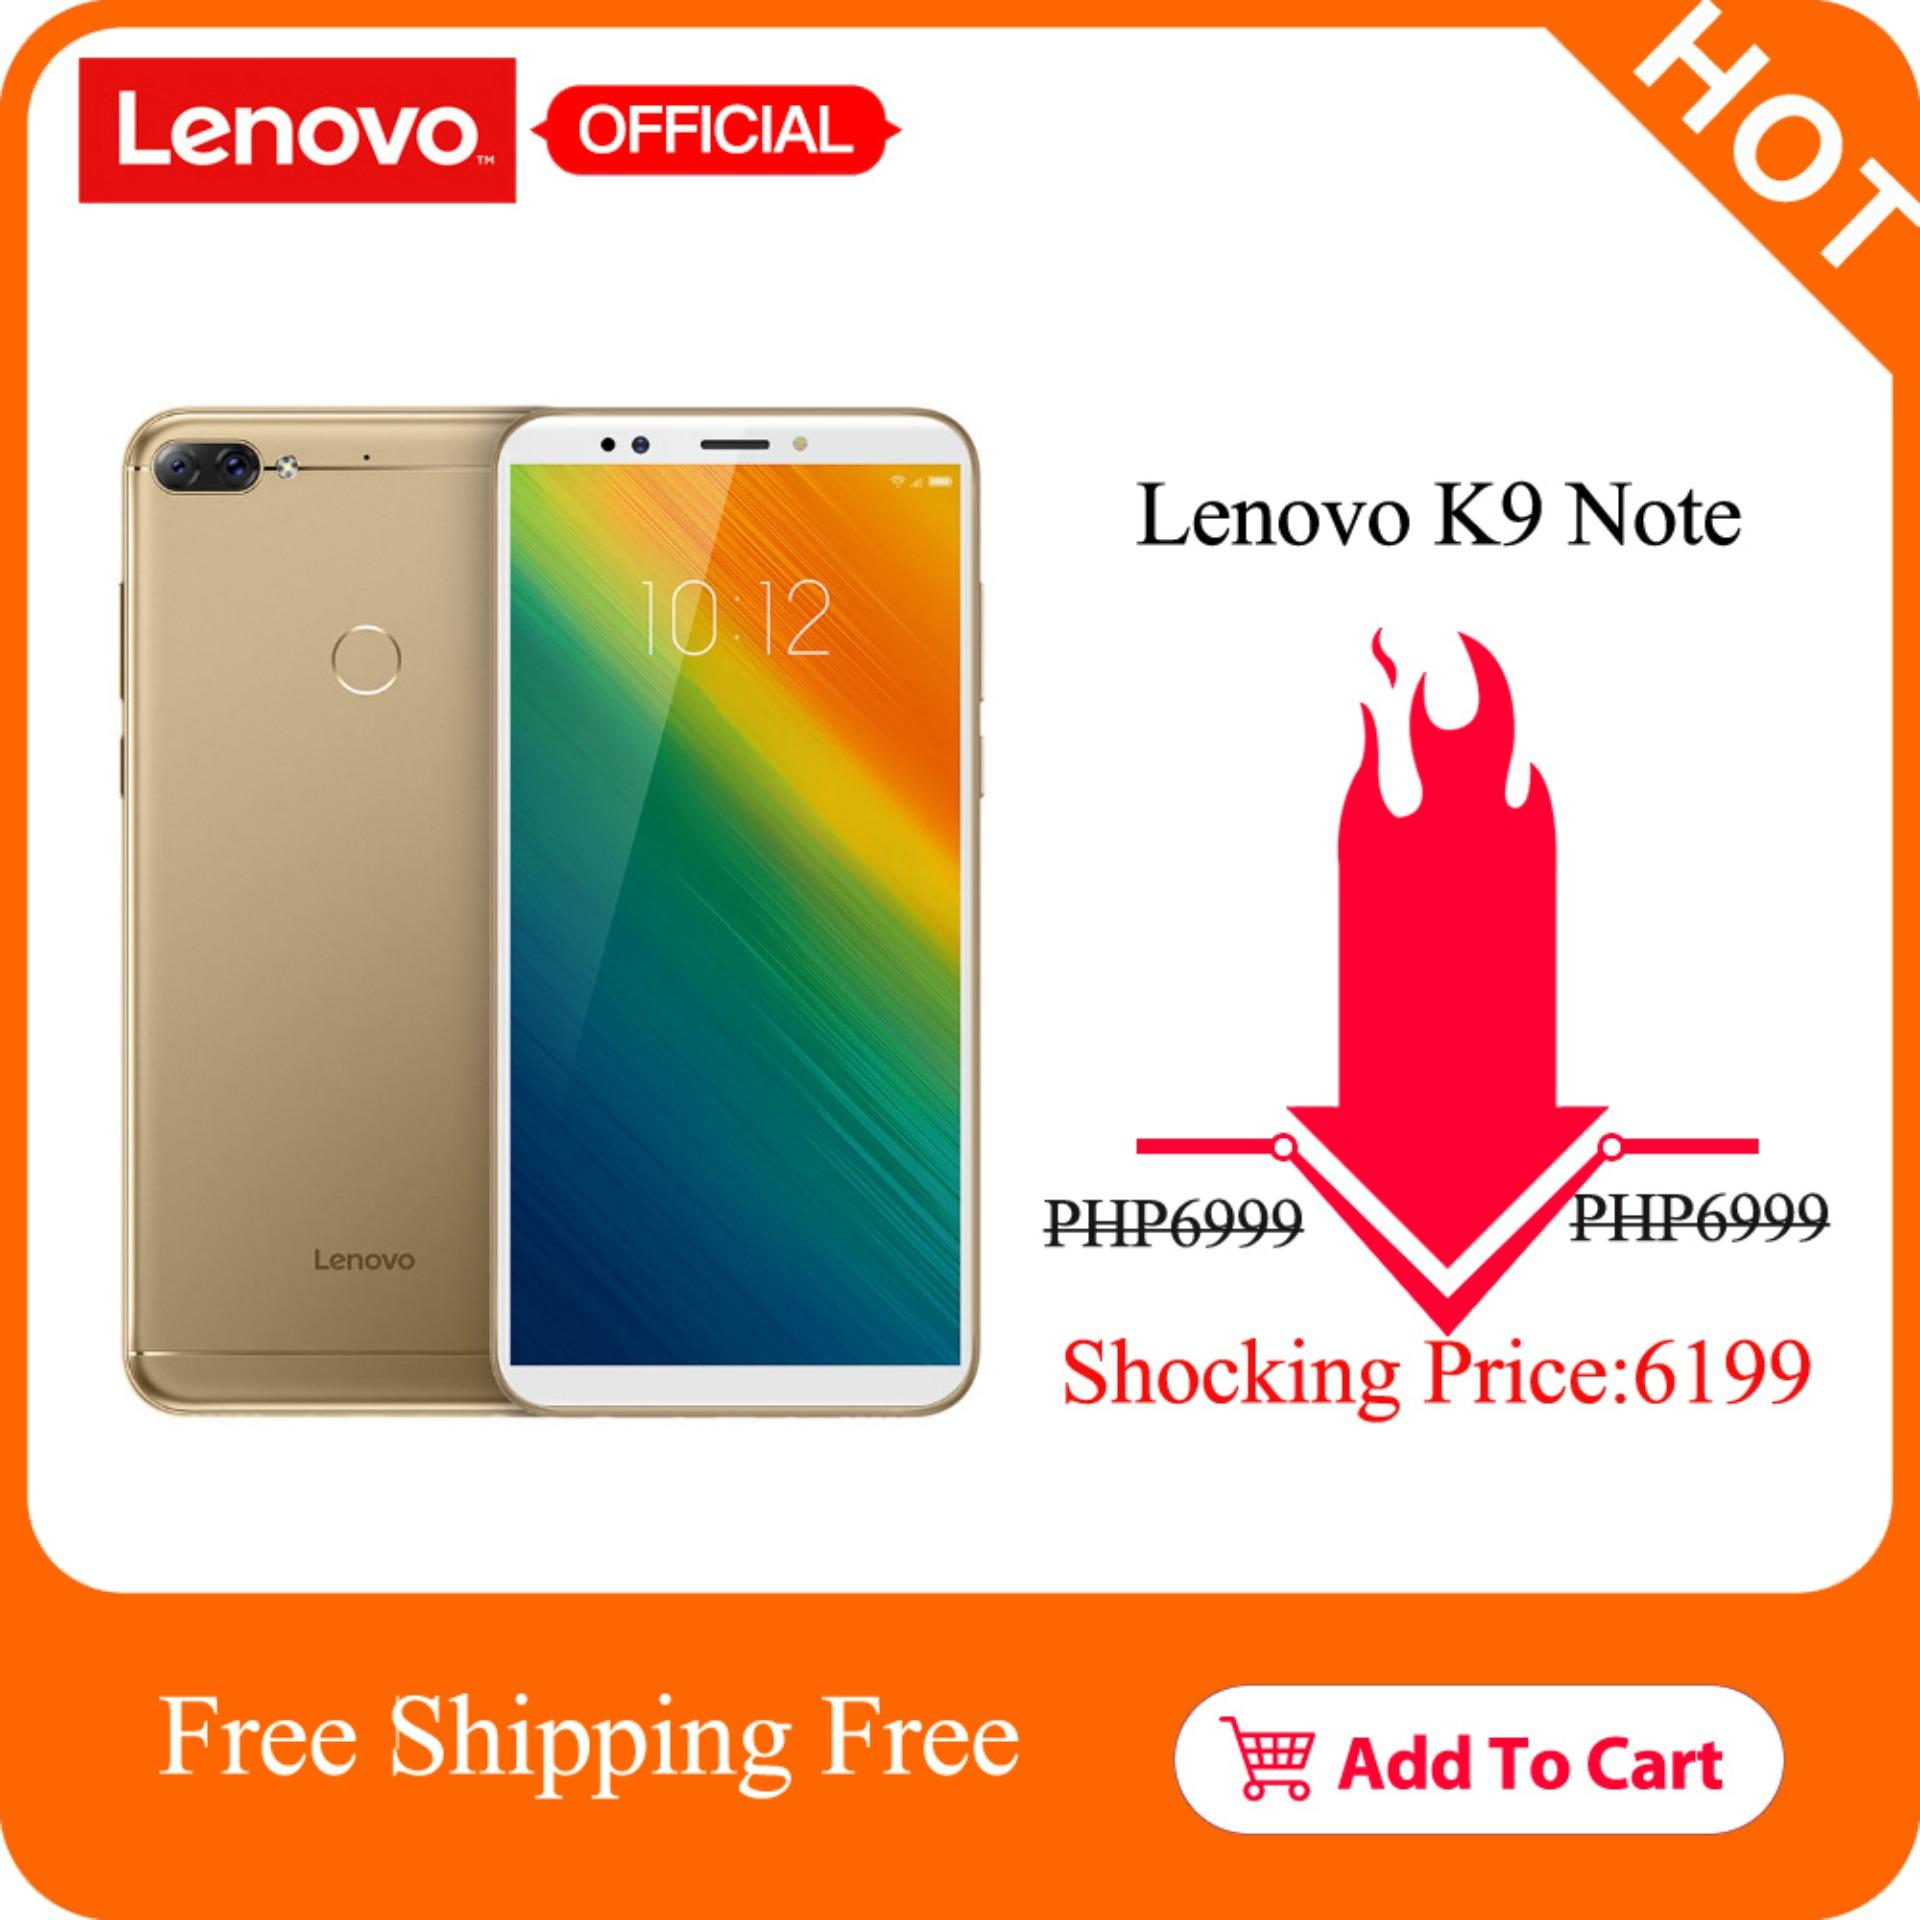 Lenovo Philippines - Lenovo Phone for sale - prices & reviews | Lazada